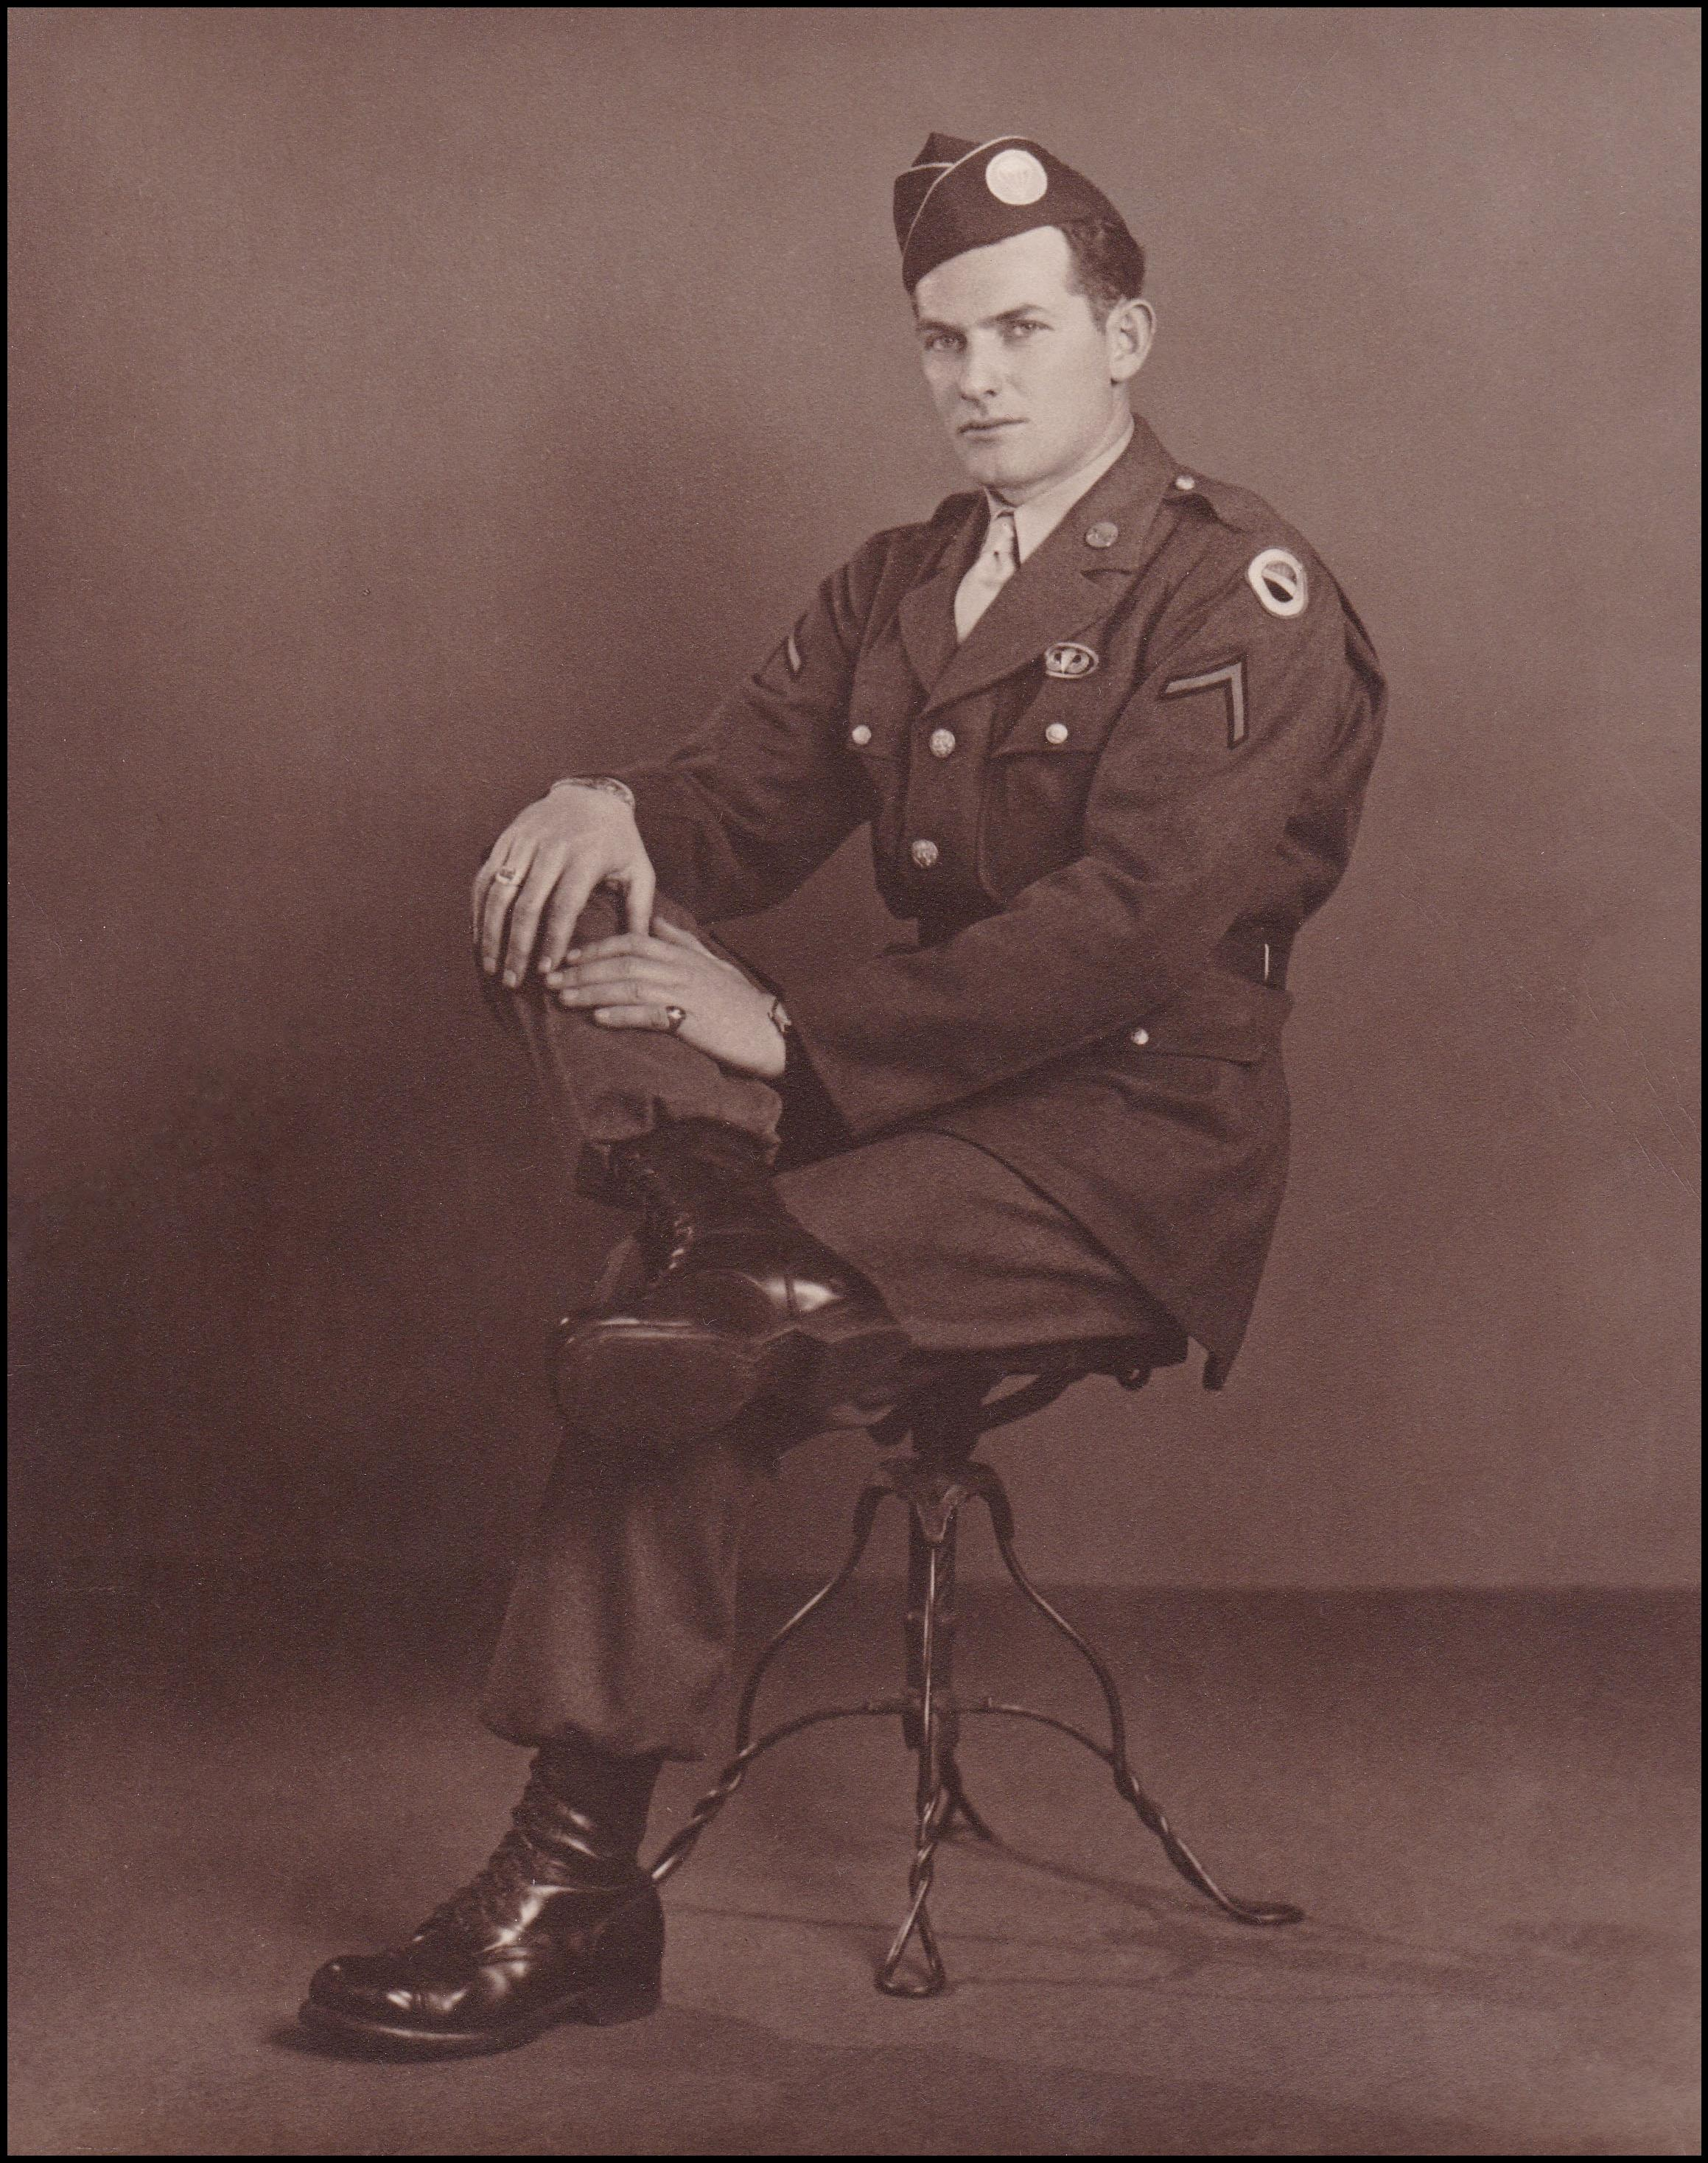 Private First Class Calvin Kaufman